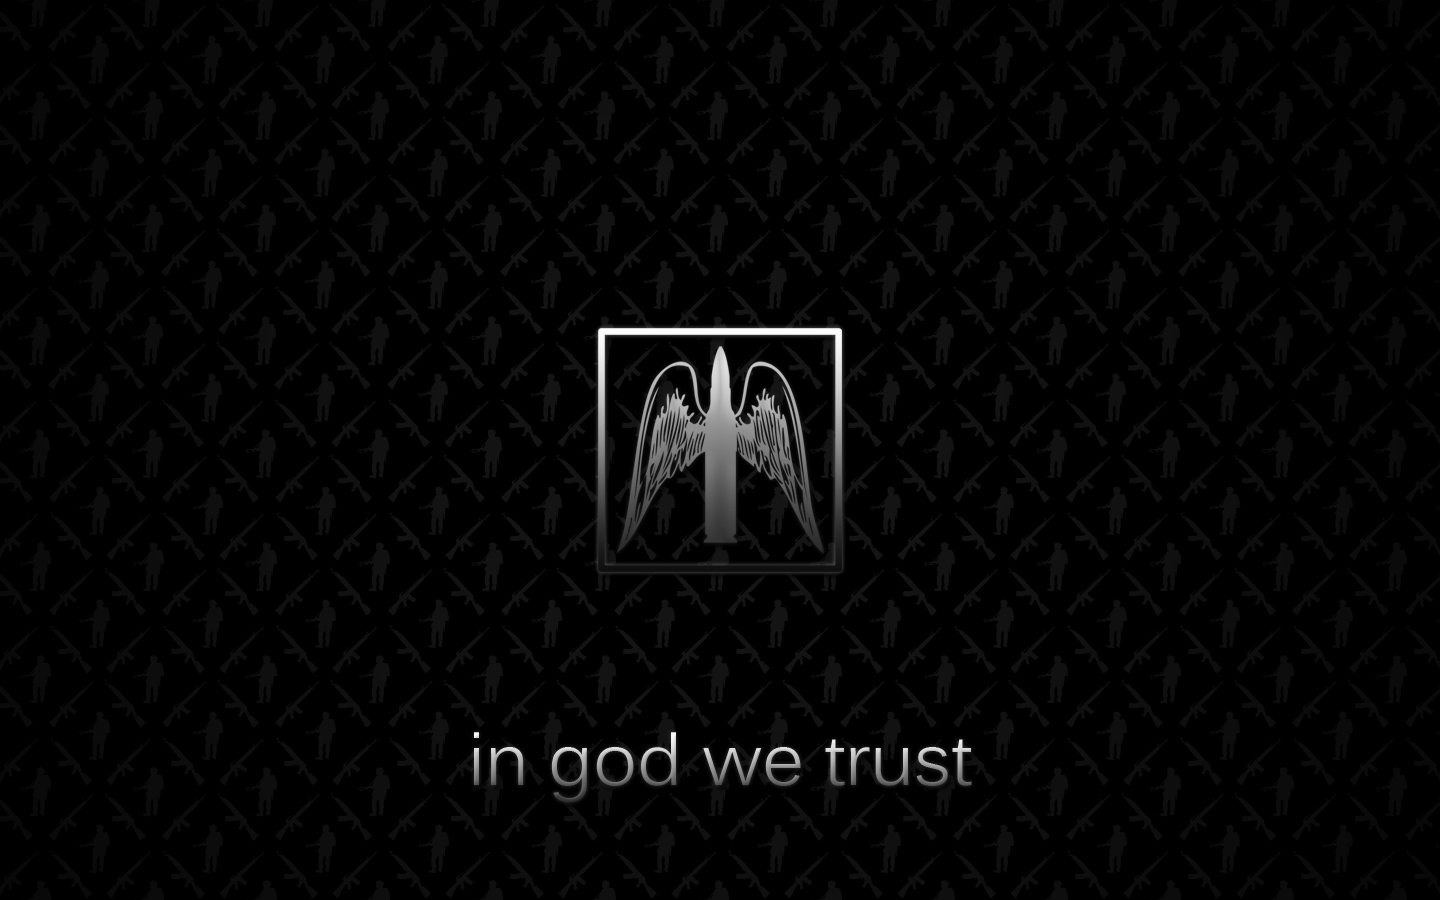 In god we trust by OrigamiSuicida